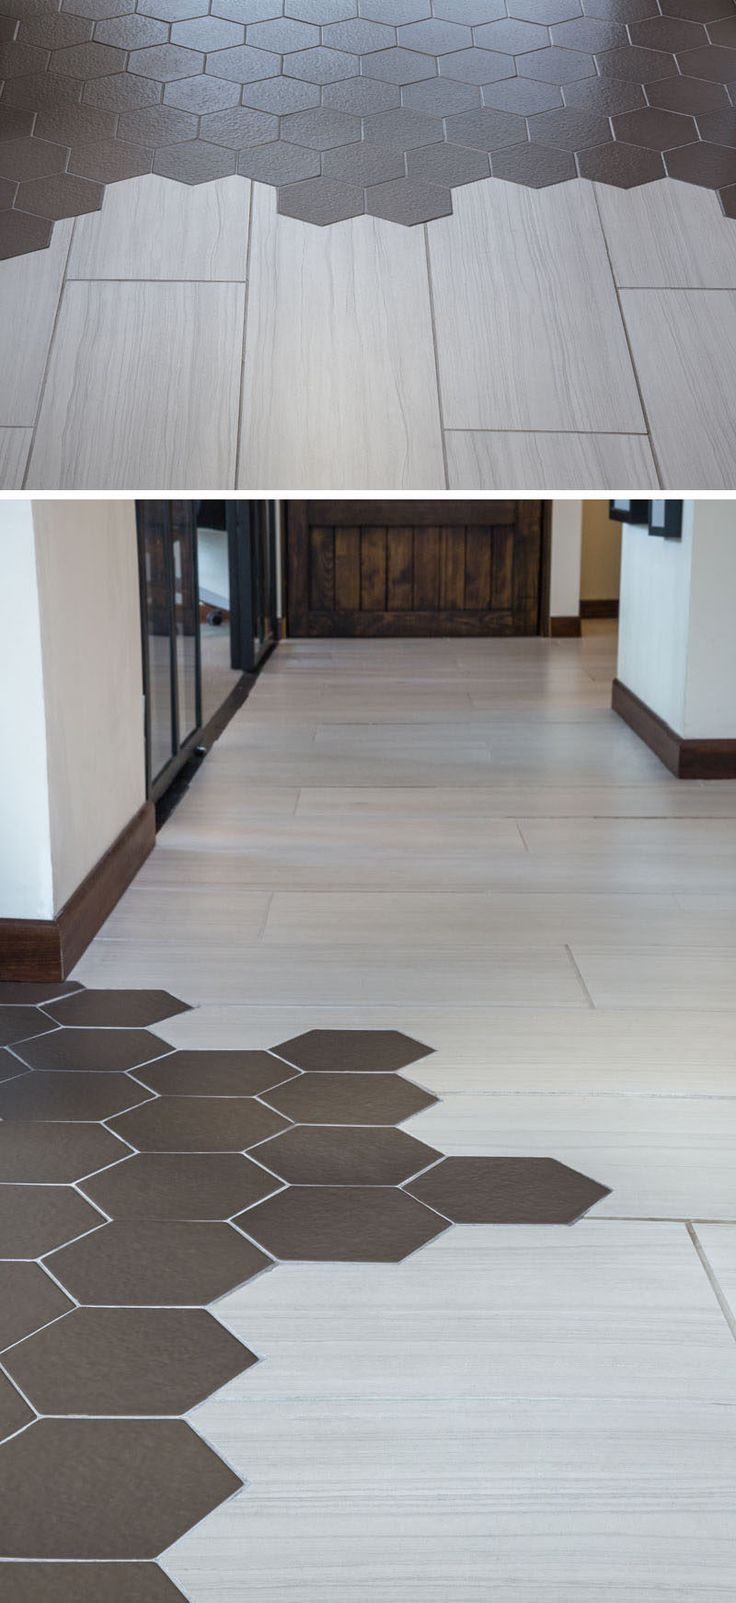 109 best flooring and tile images on pinterest basement basement studio 11 used a mix of hexagon and wood tiles for their flooring when they dailygadgetfo Image collections